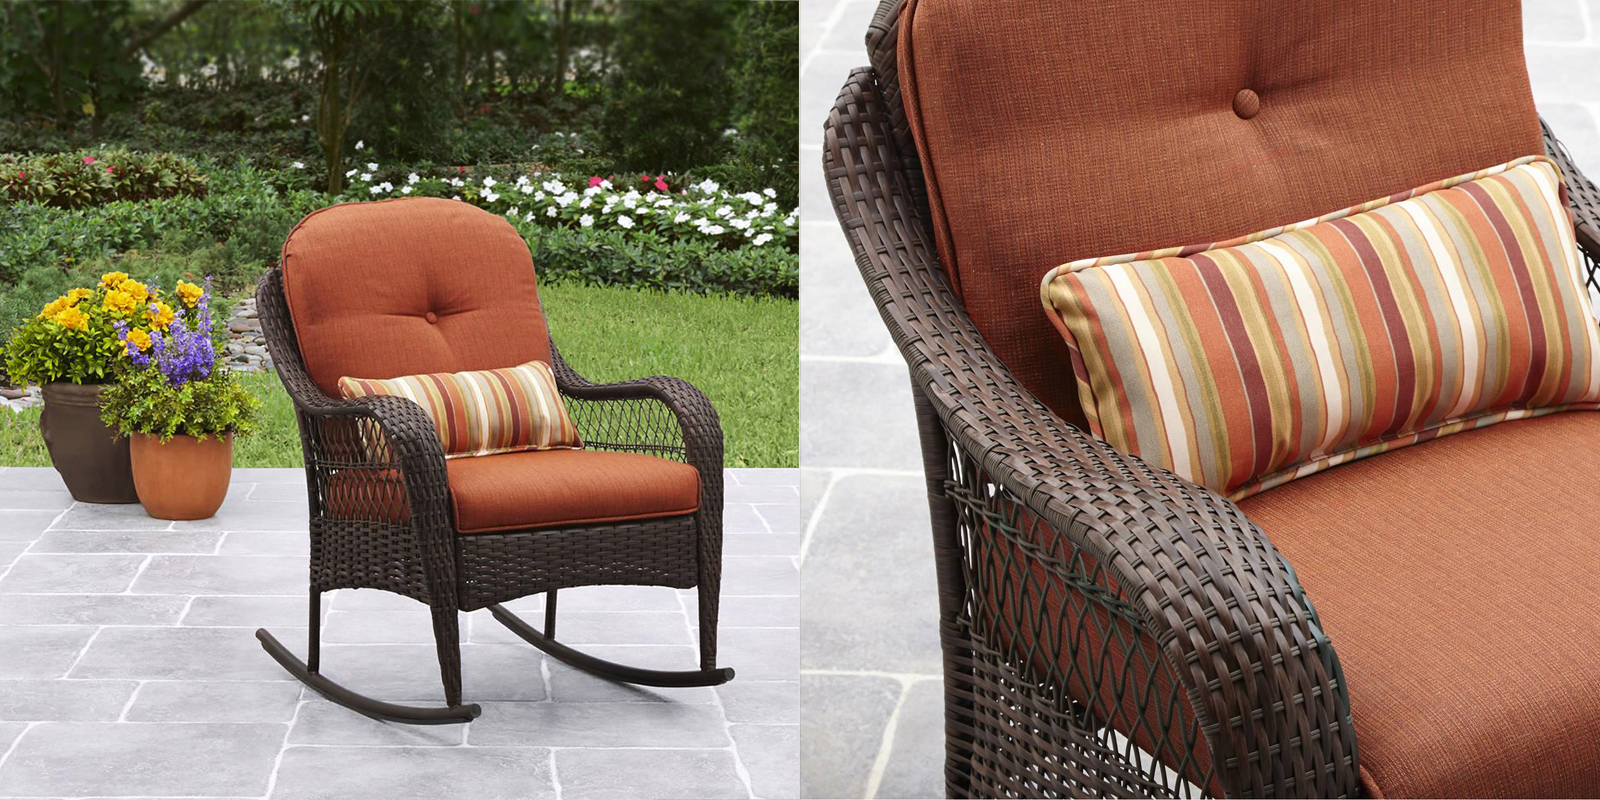 Patio Chair - All-Weather Wicker Rocker